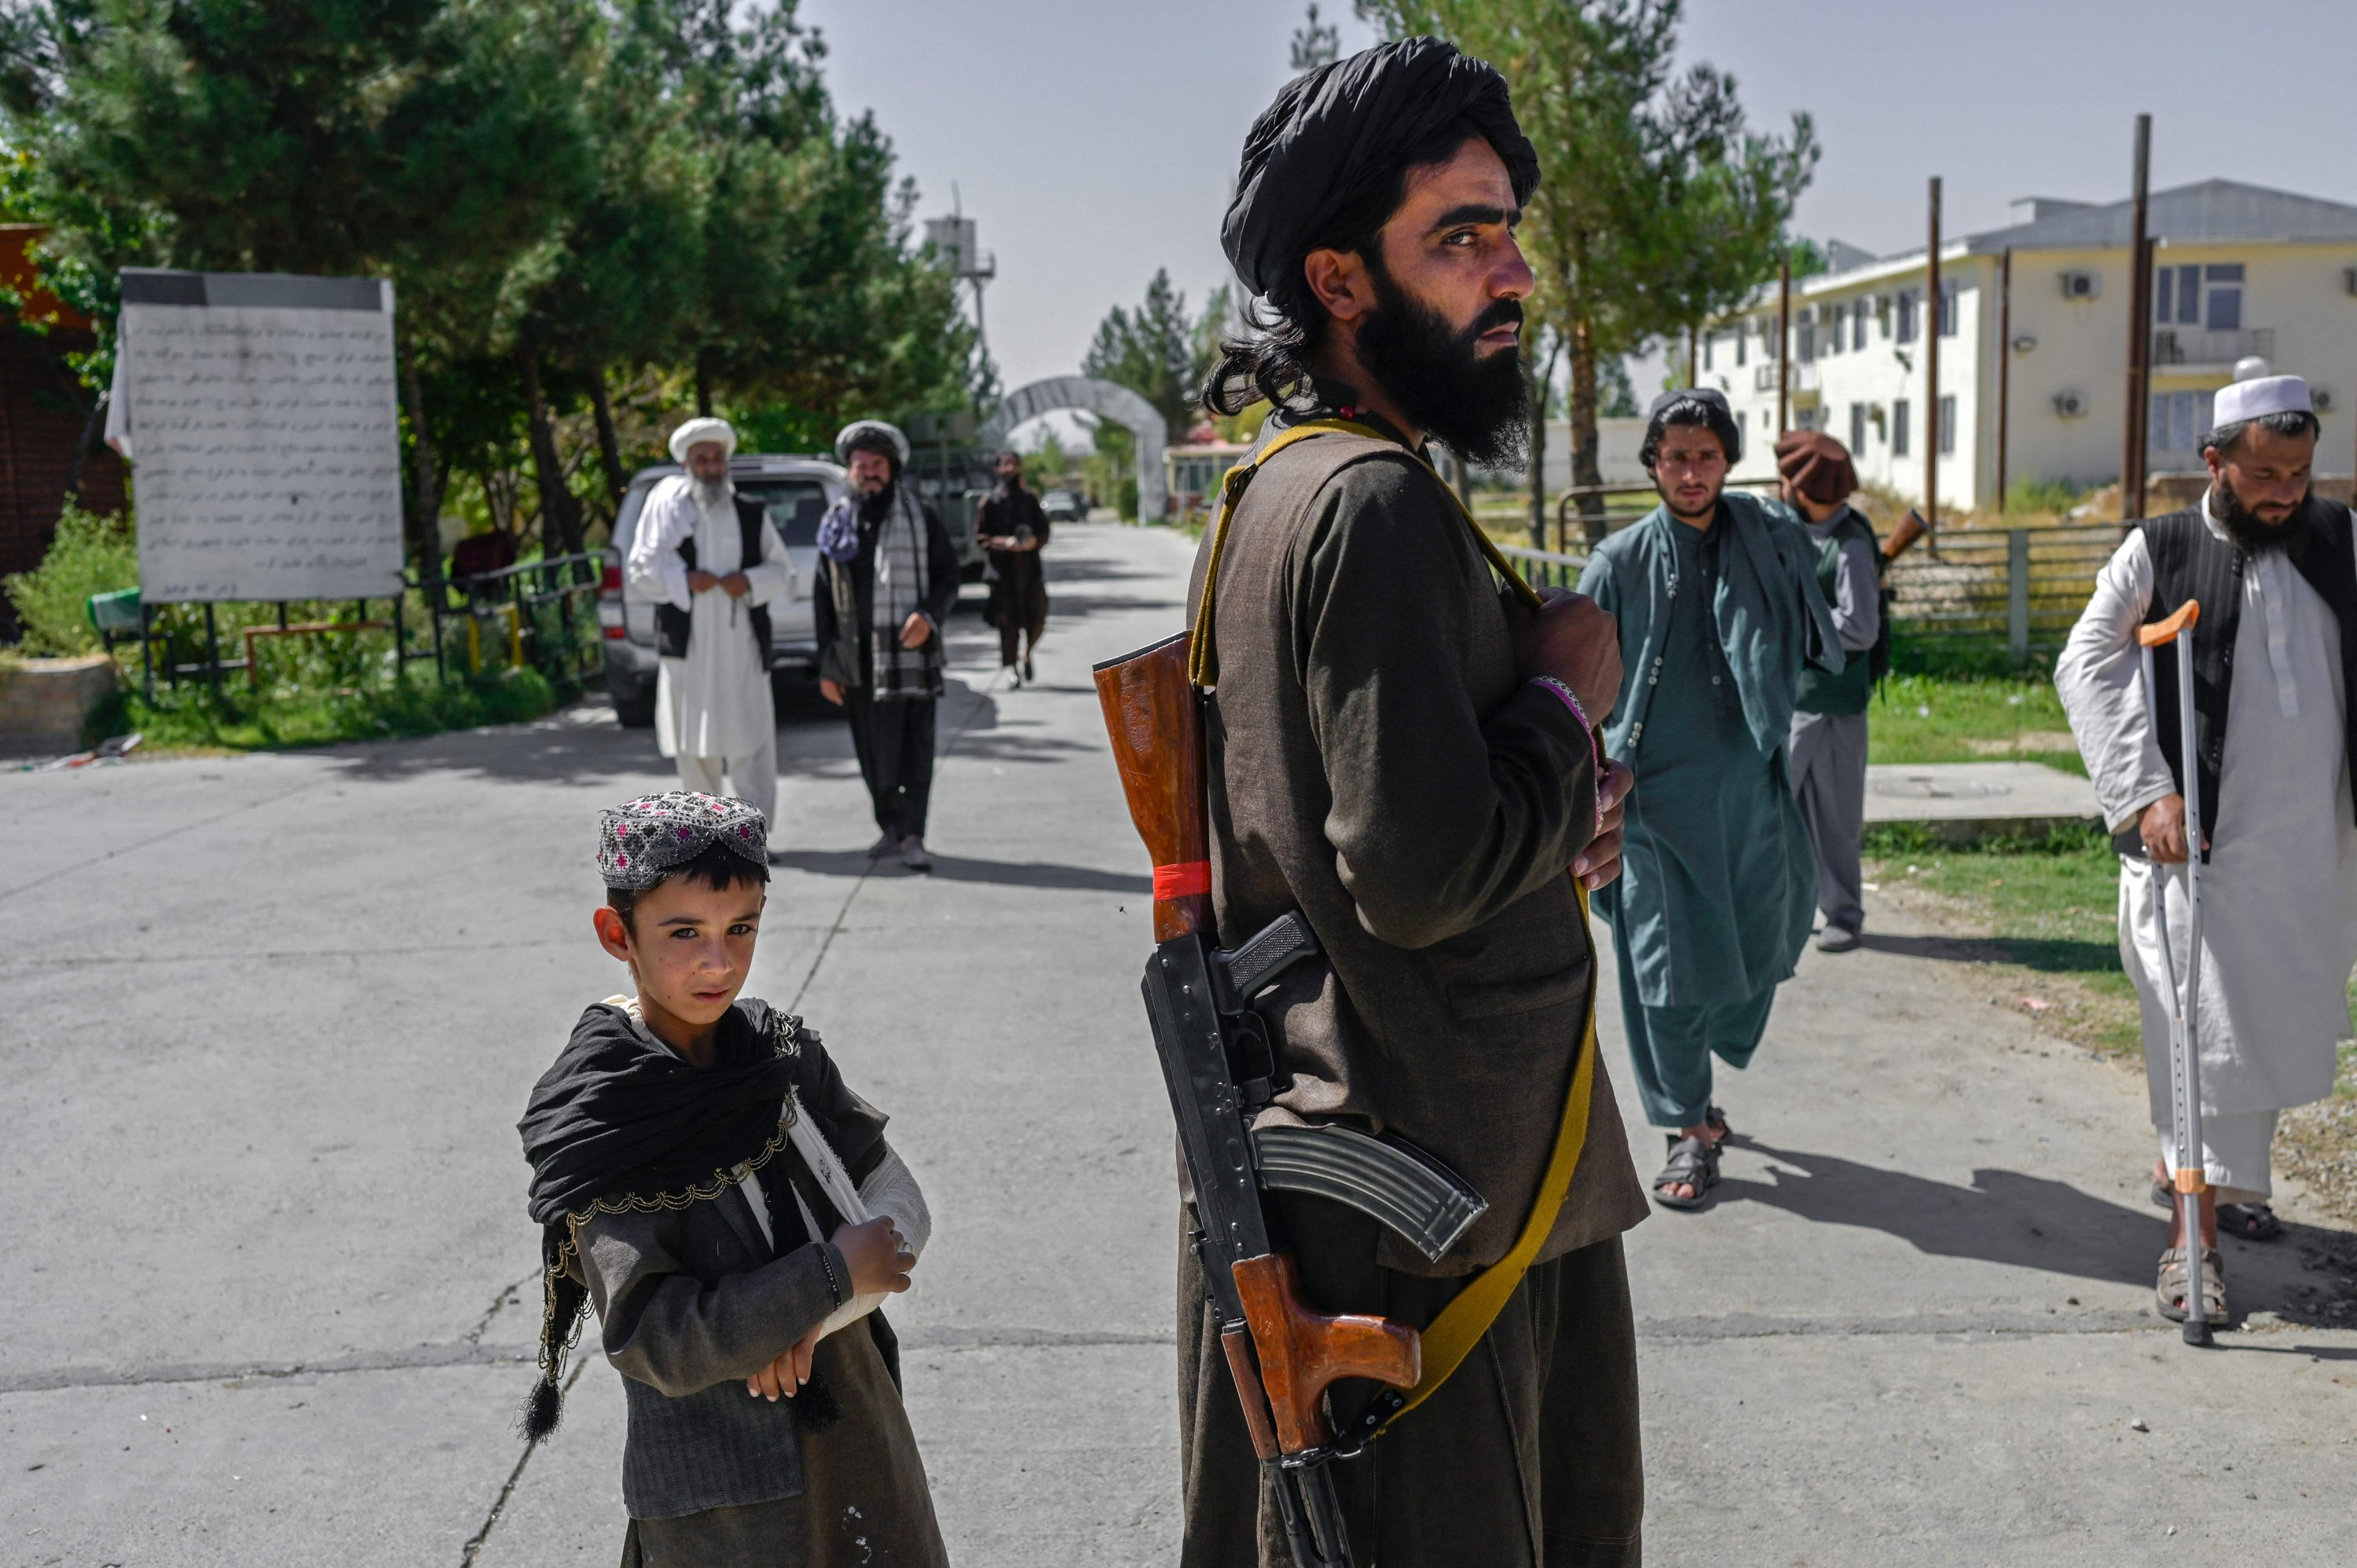 An Afghan boy stands next to a member of the Taliban in front of the Pul-e-Charkhi prison in Kabul, Afghanistan, Sept. 16, 2021. (Photo by BULENT KILIC via AFP)